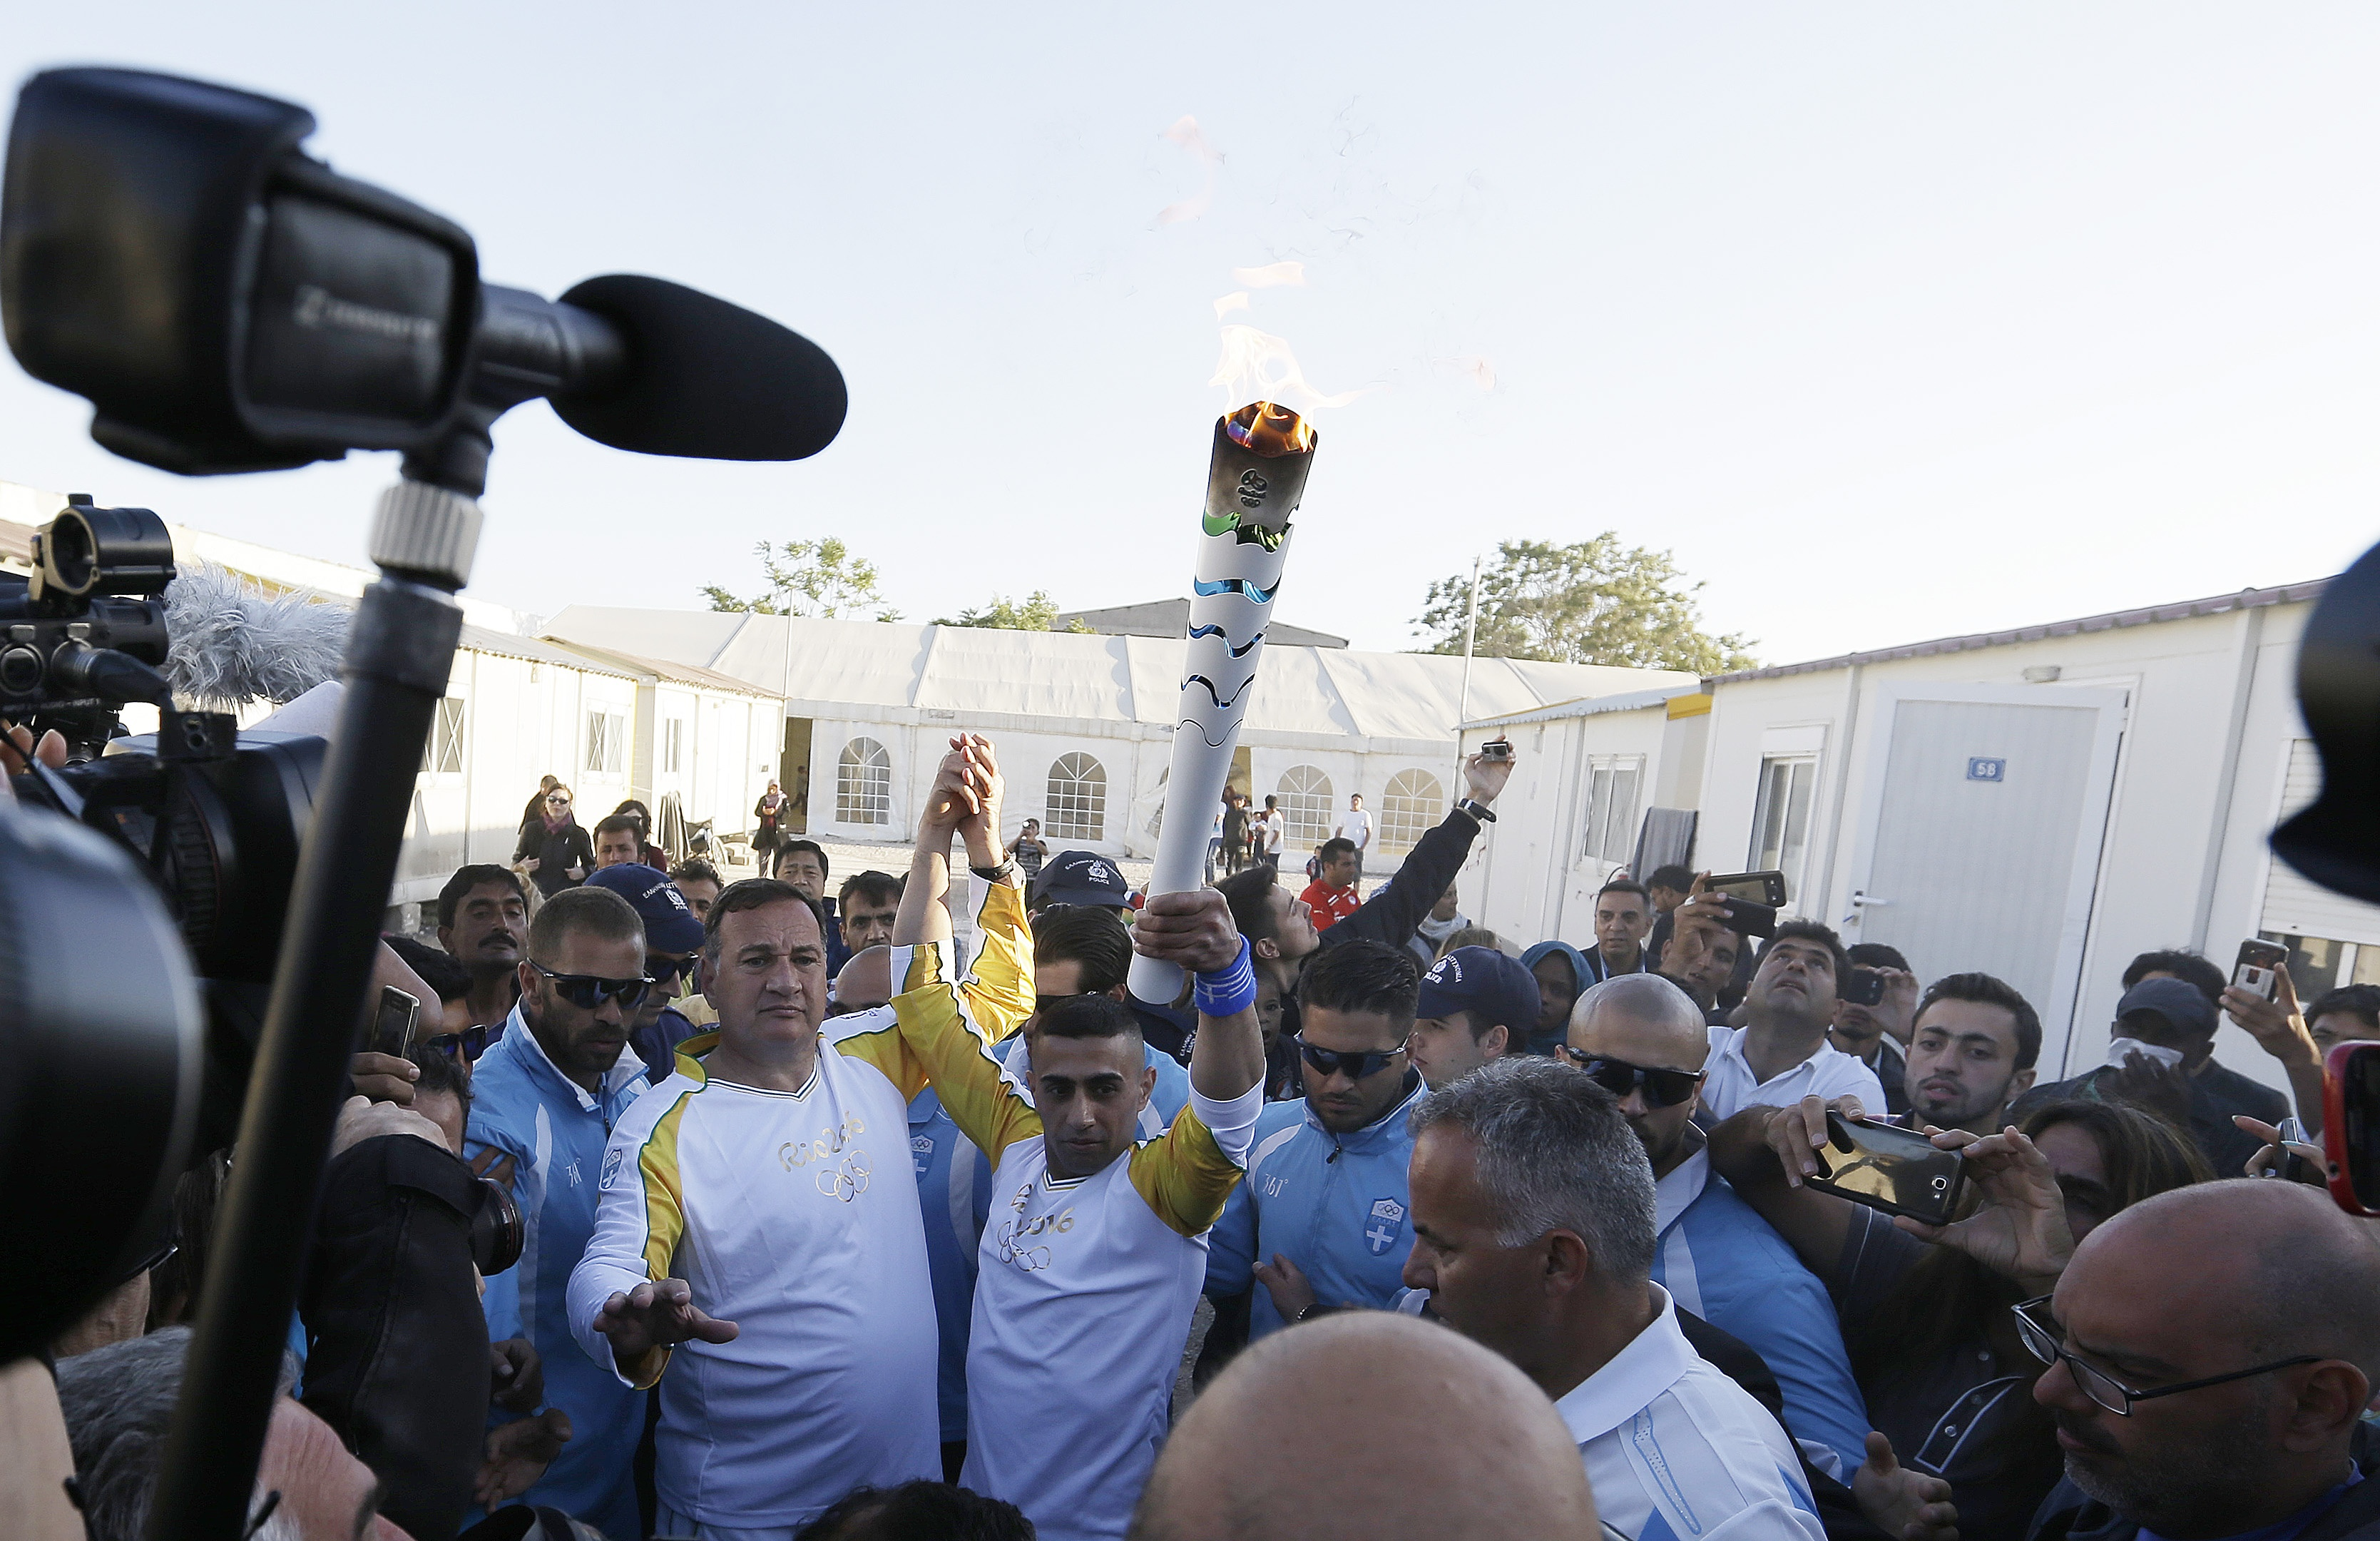 Syrian refugee Ibrahim Al-Hussein, 27, center, freestyle swimmer, basketball player and former judo wrestler holds the Olympic flame as the head of Greece's Olympic Committee, Spyros Capralos, holds his hand at the Elaionas camp that is home to about 1,50